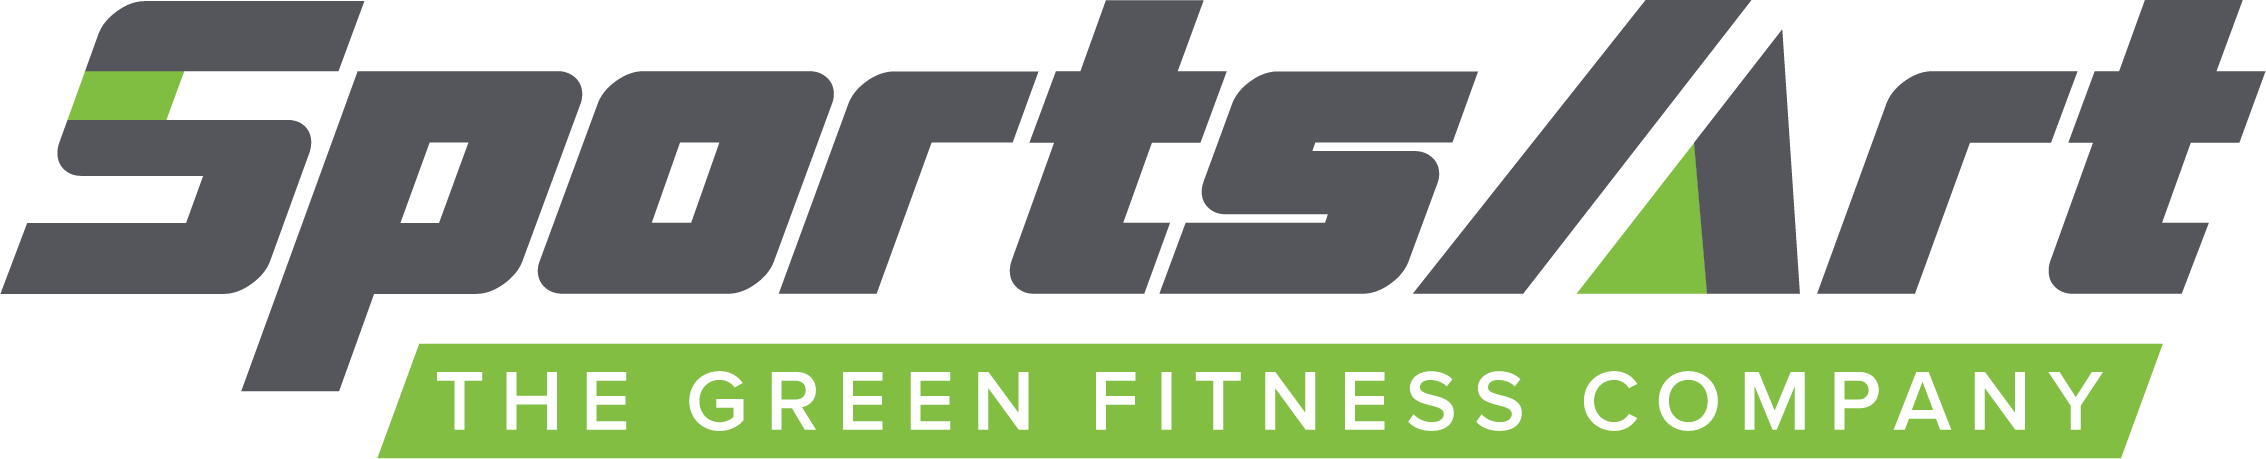 SportsArt The Green Fitness Company Primary Logo_2C-Gray-Green.png